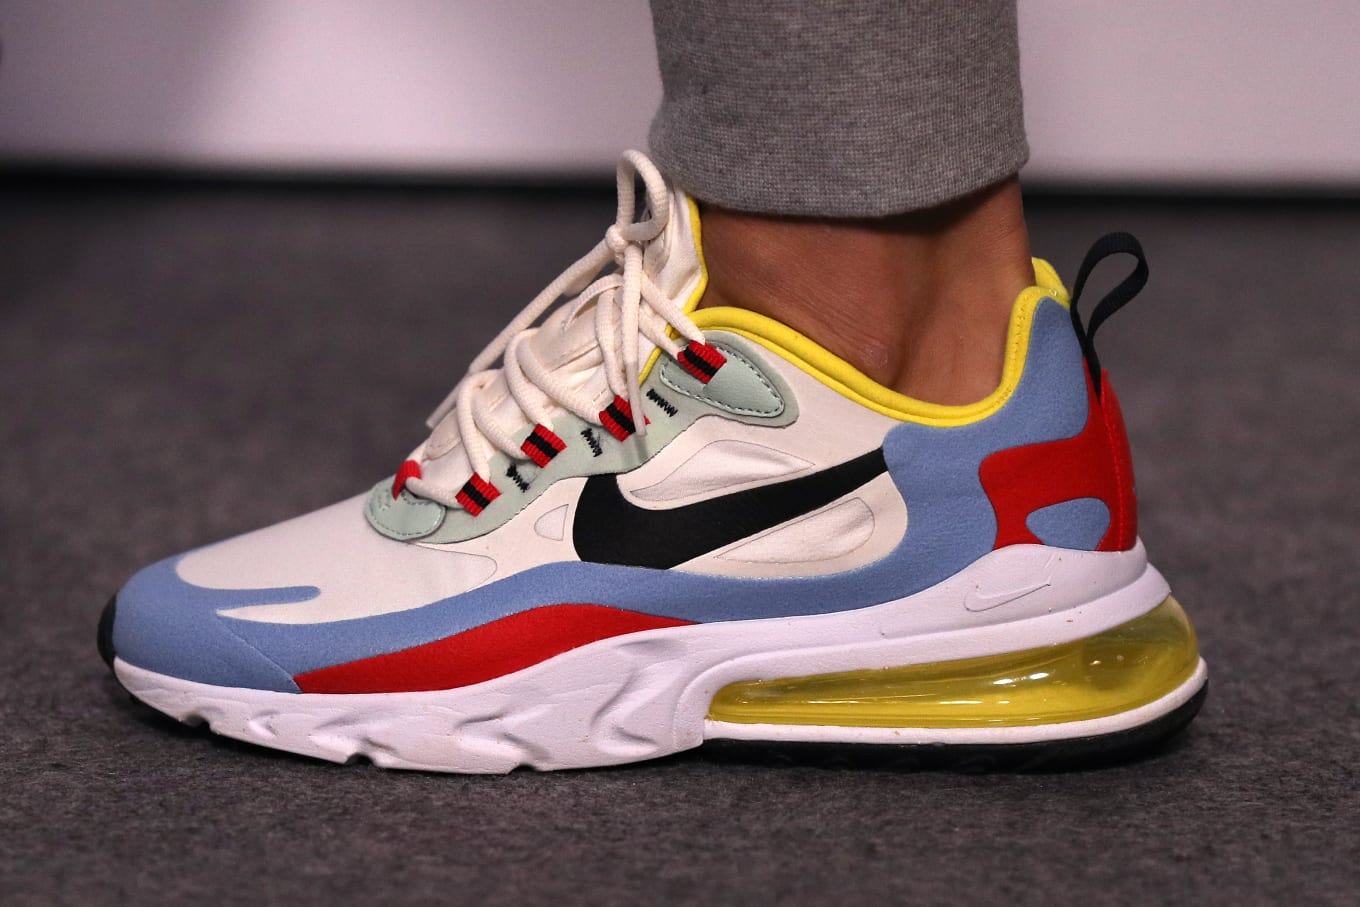 270 Air Max Release DateSole Collector React Nike EDIWH92